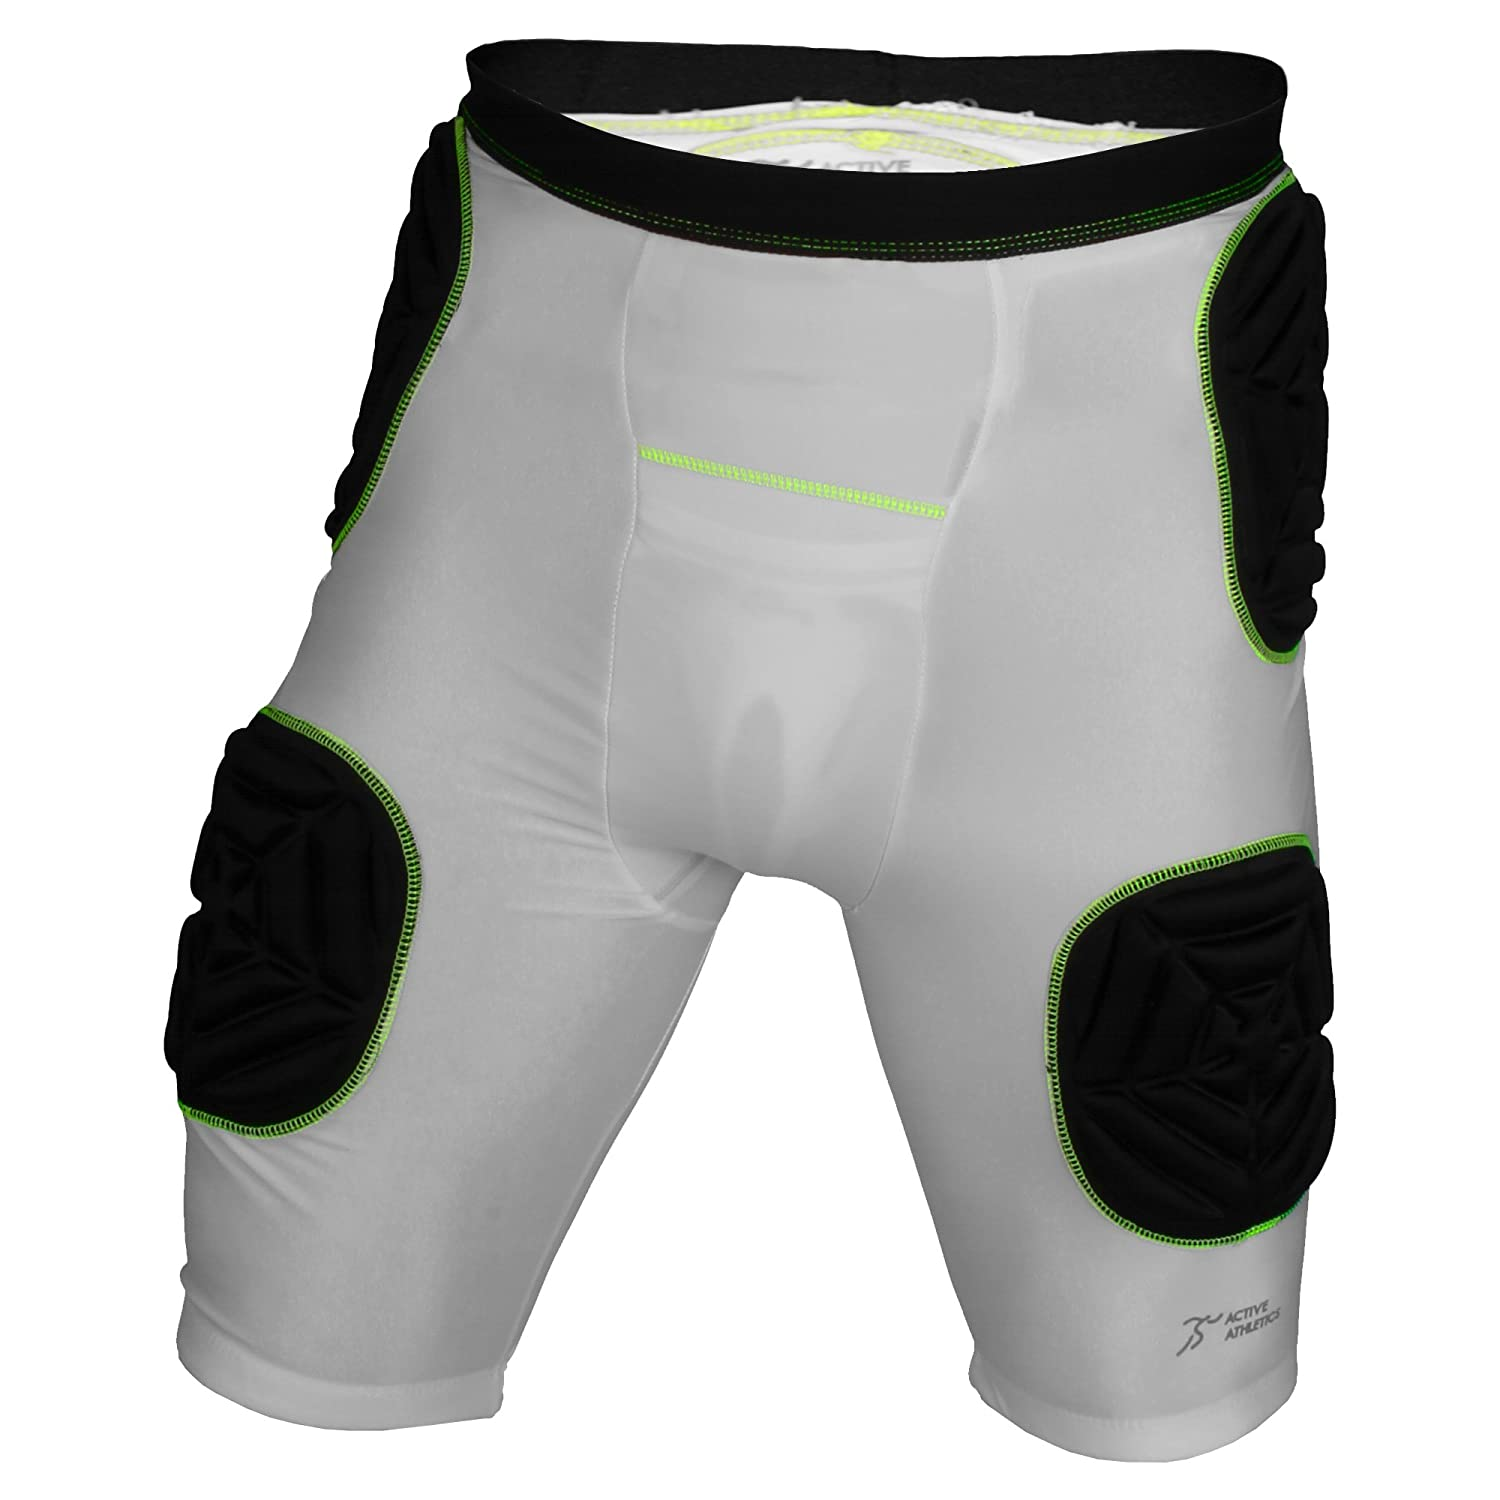 Active Athletics American Football 5 Pad Unterhose - Weiß